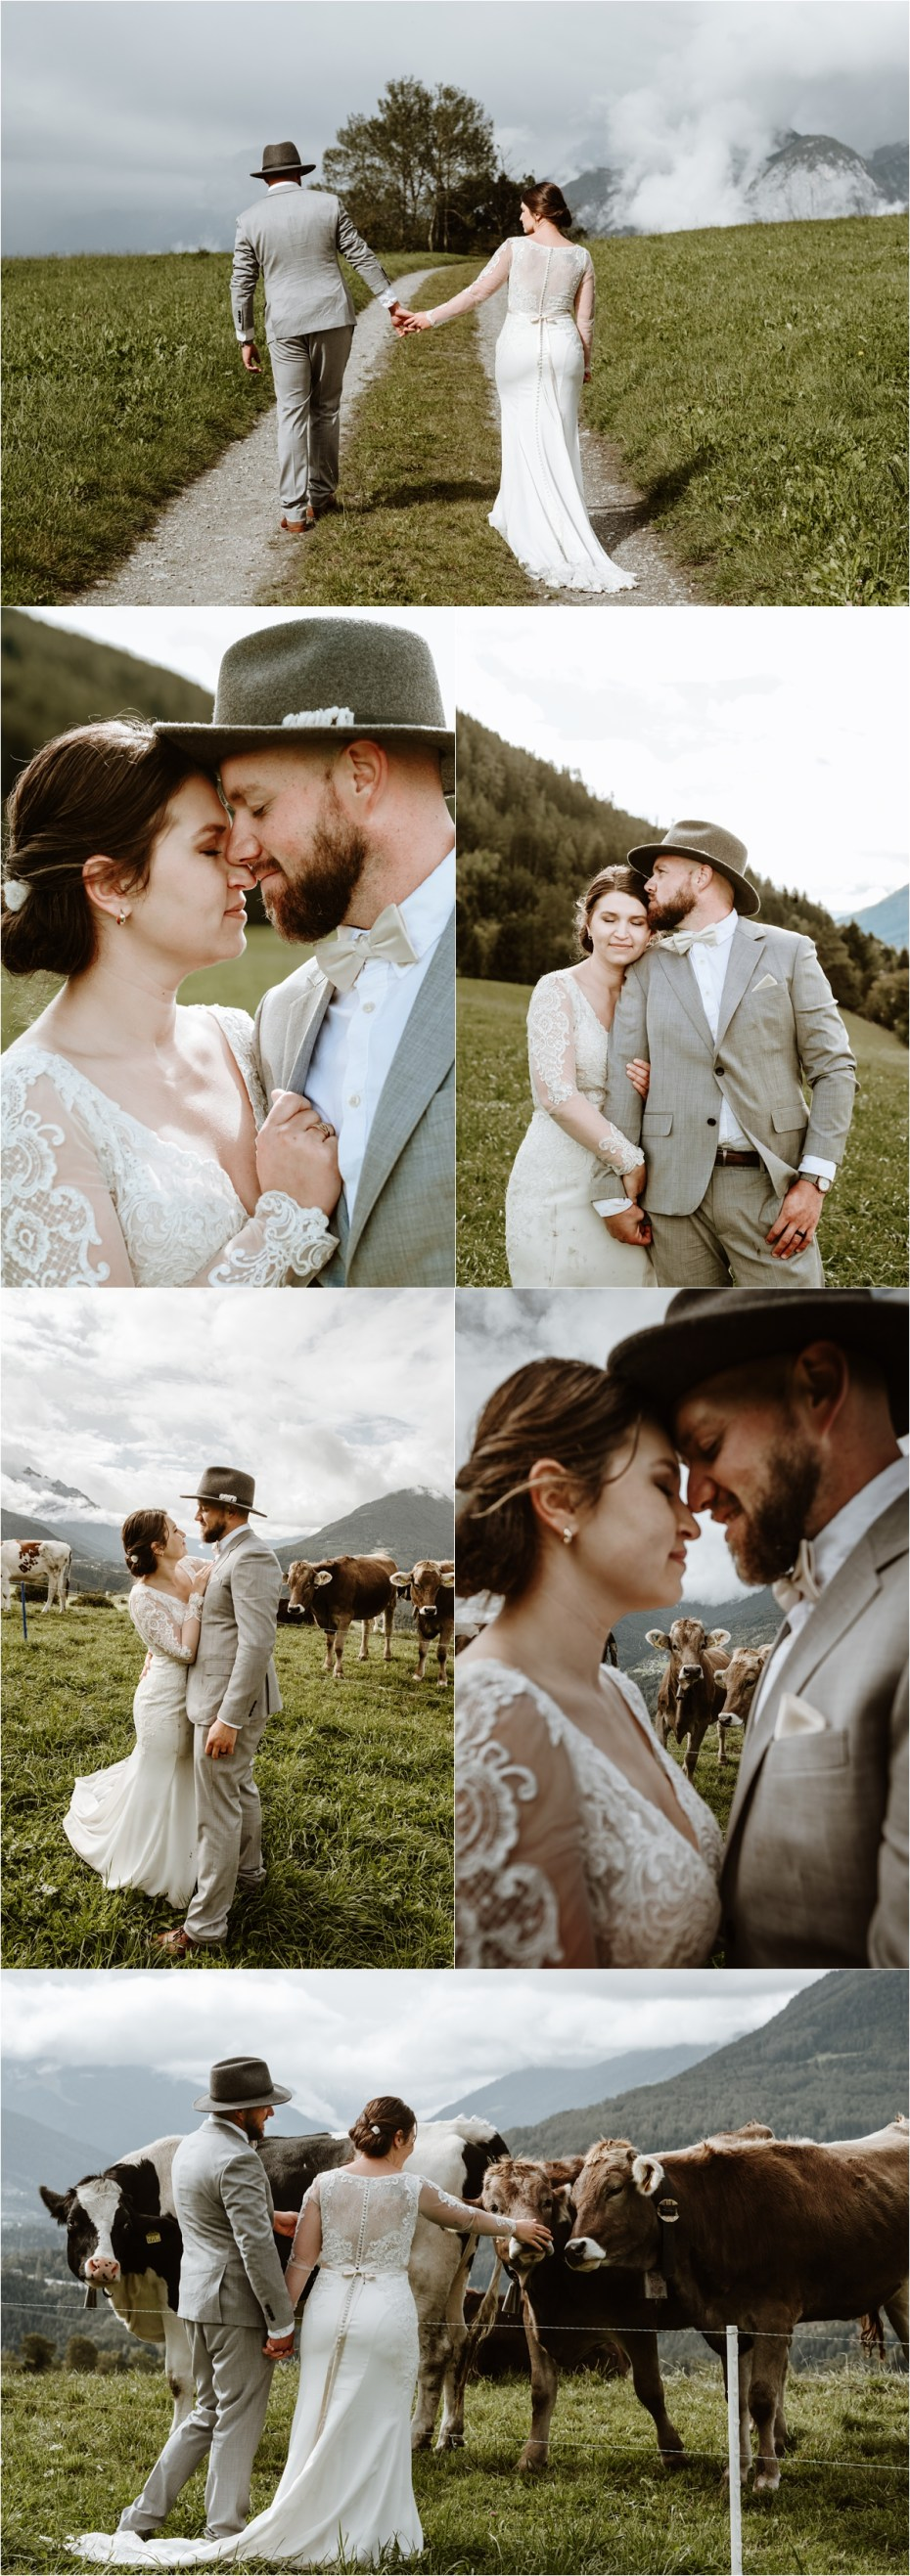 Wedding with cows in Innsbruck Austria. Photos by Wild Connections Photography